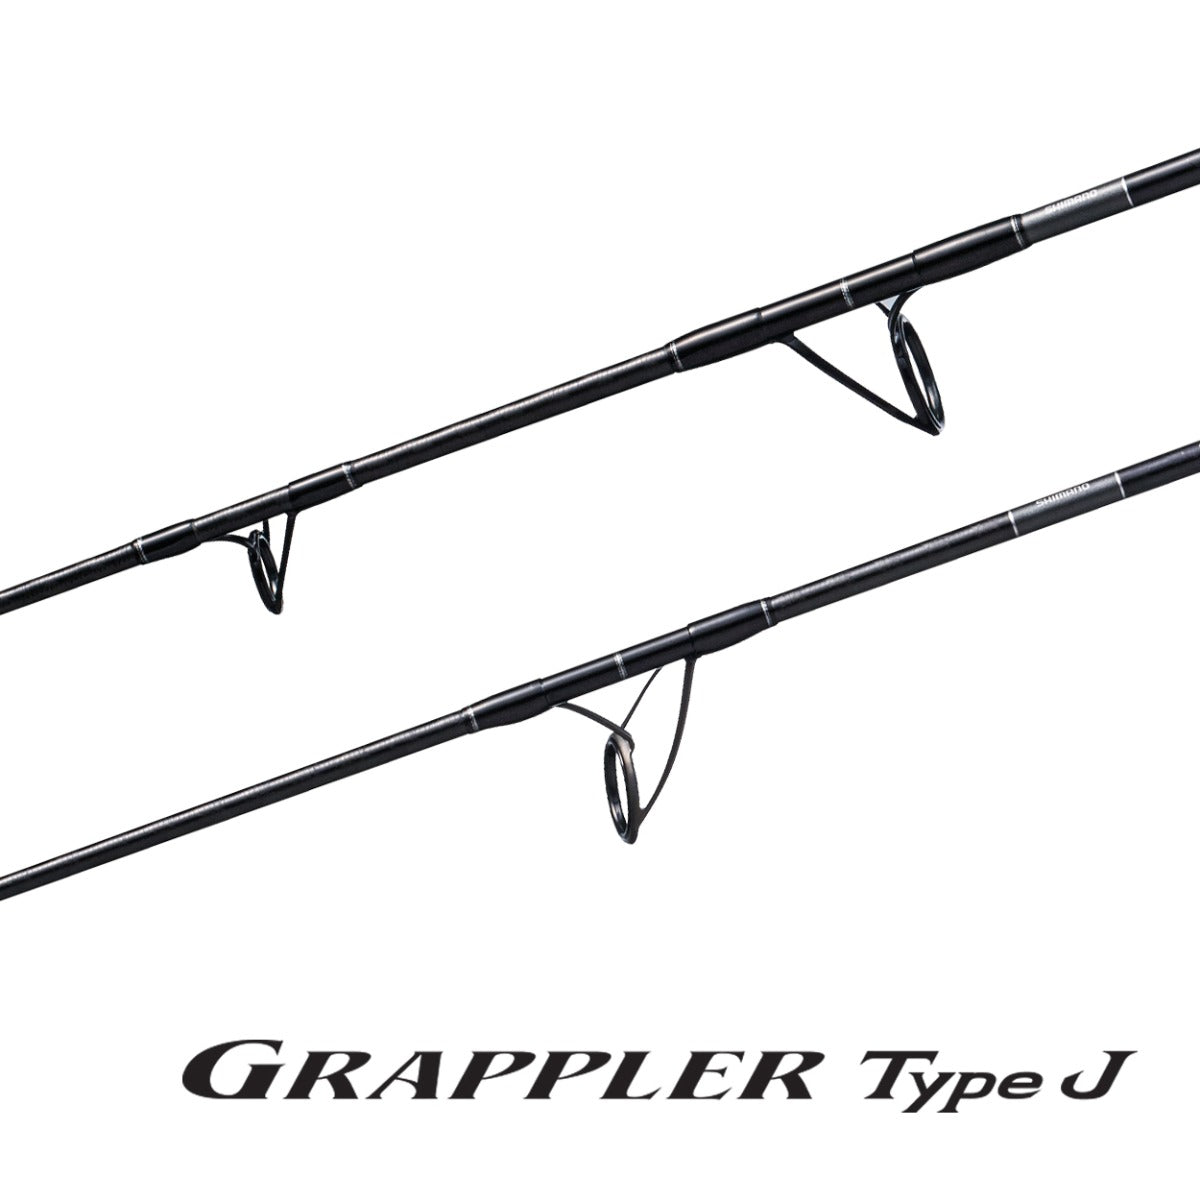 Shimano 2019 Grappler Type J Spinning Rod